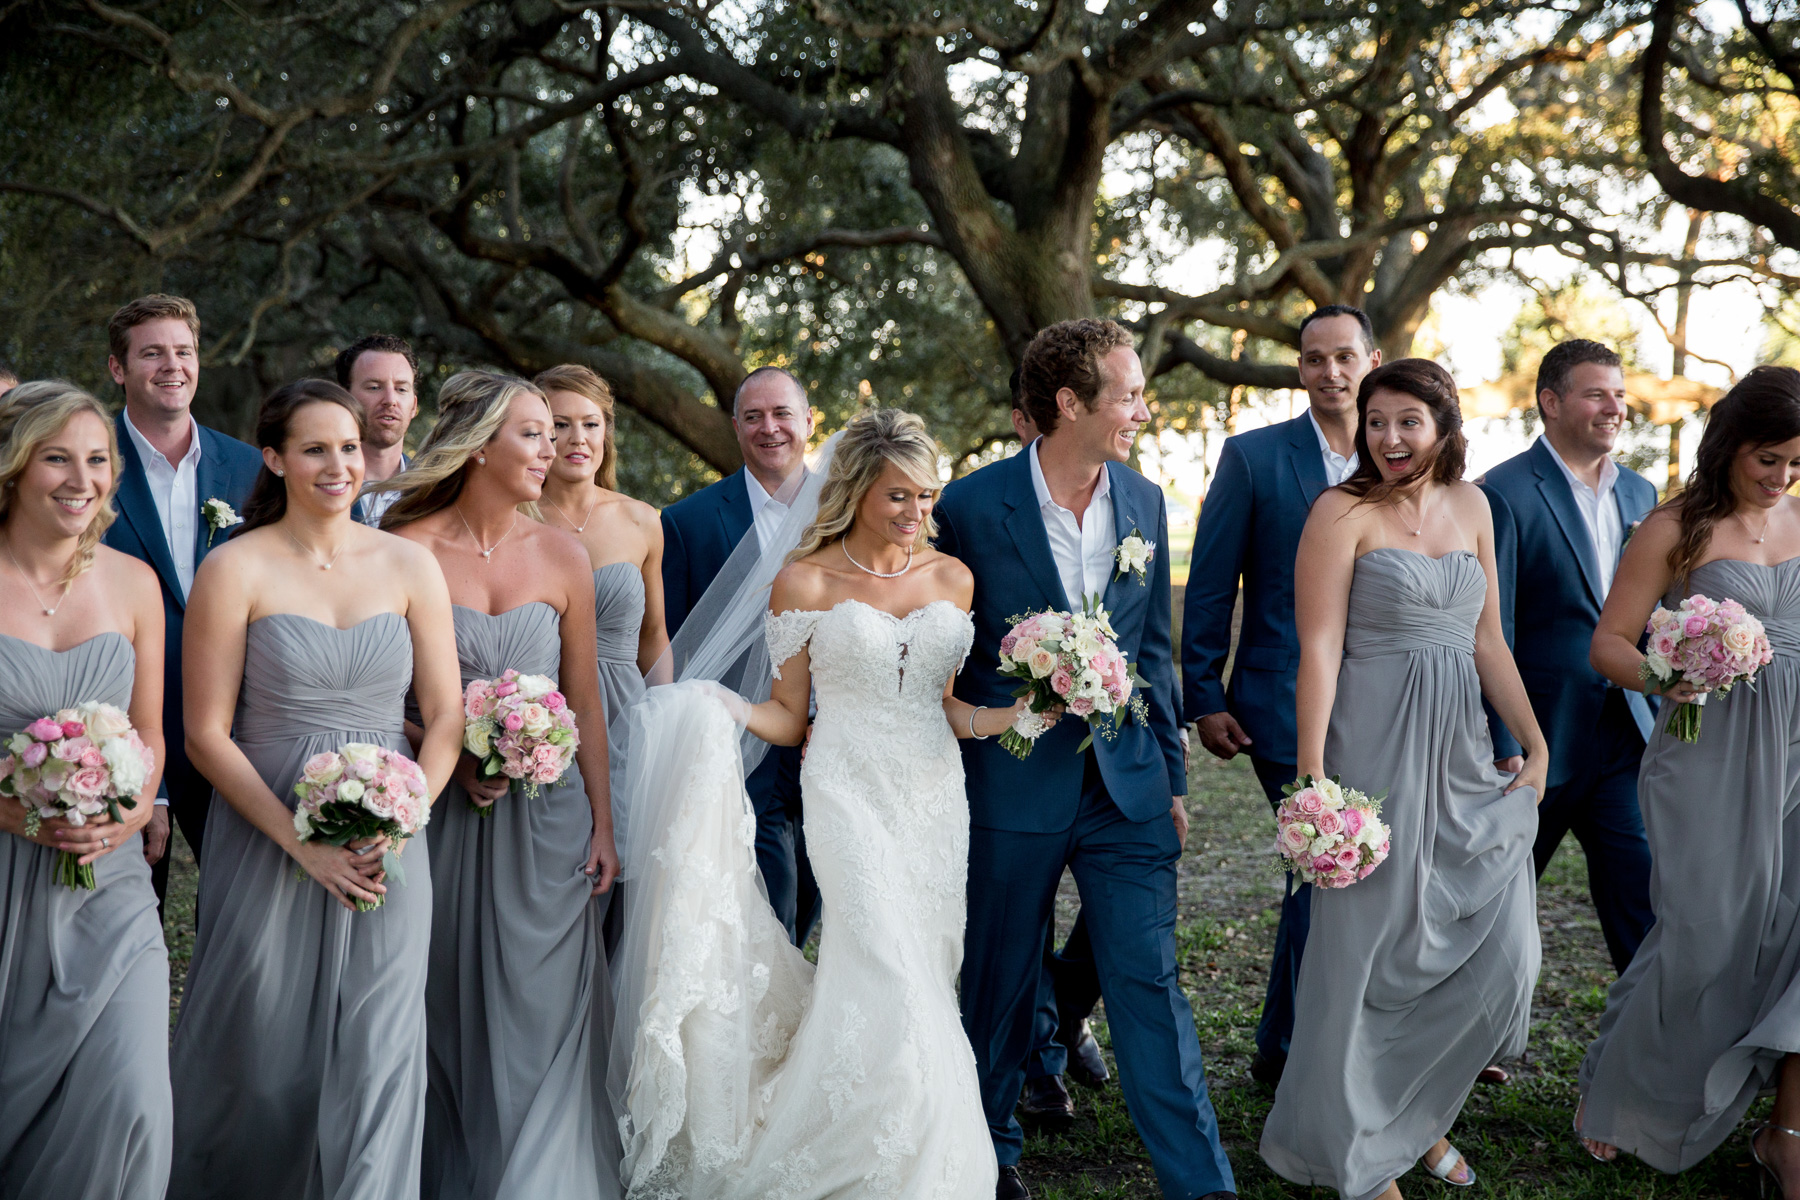 Charleston-best-wedding-photographer-SC-32.jpg